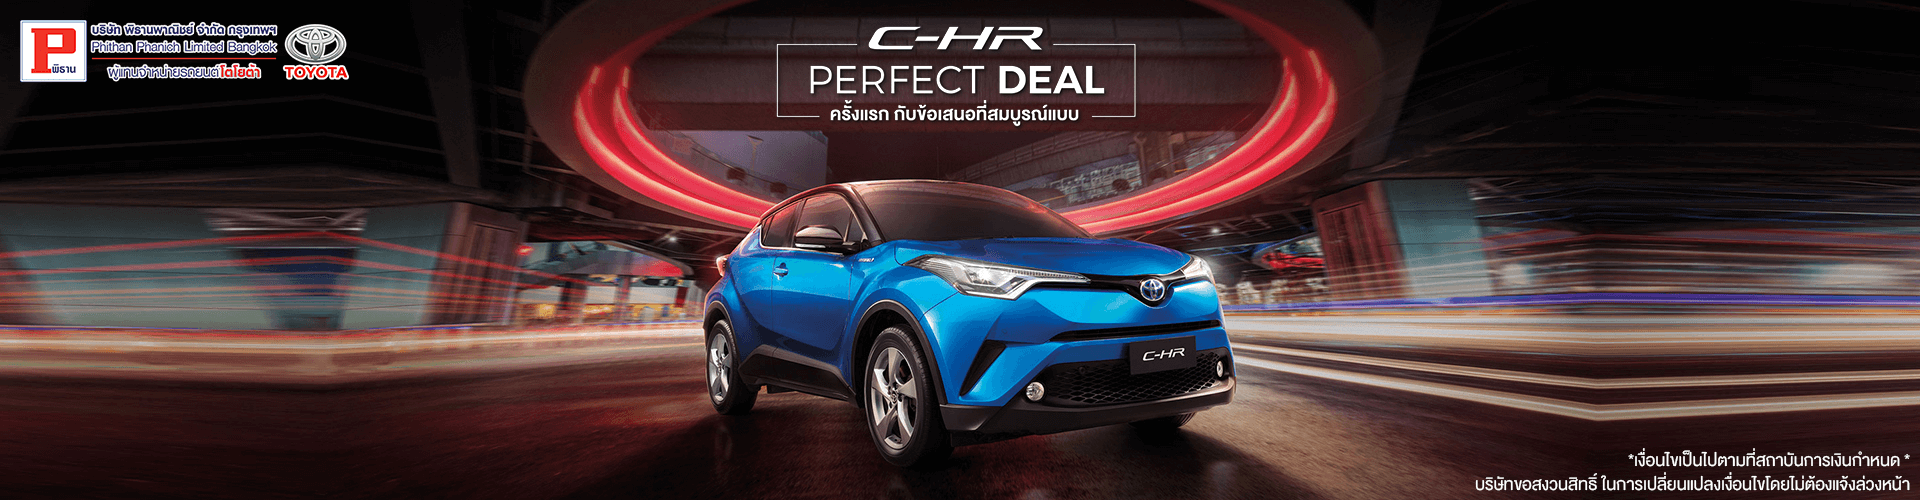 C-HR Perfect Deal